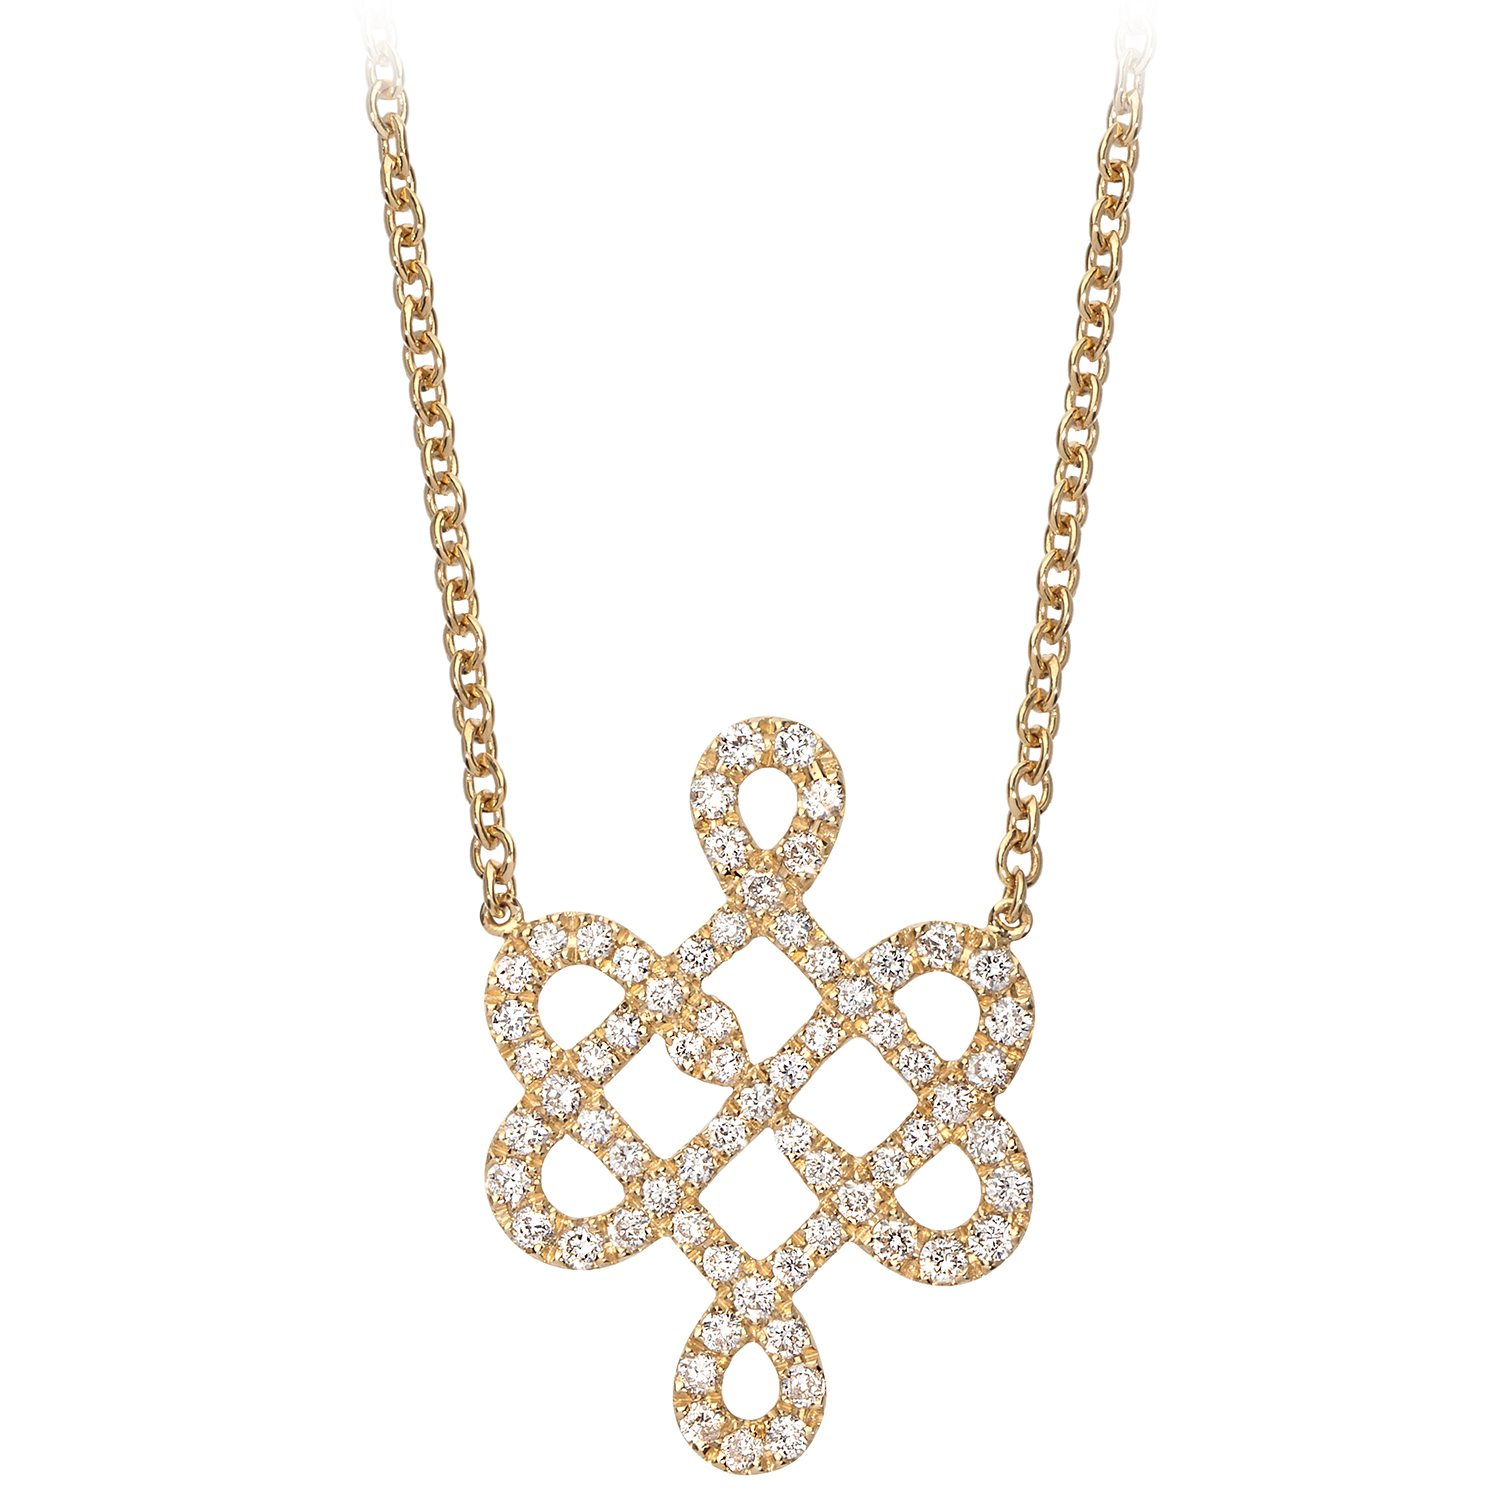 Collier Or Jaune 18k Serti de Diamants